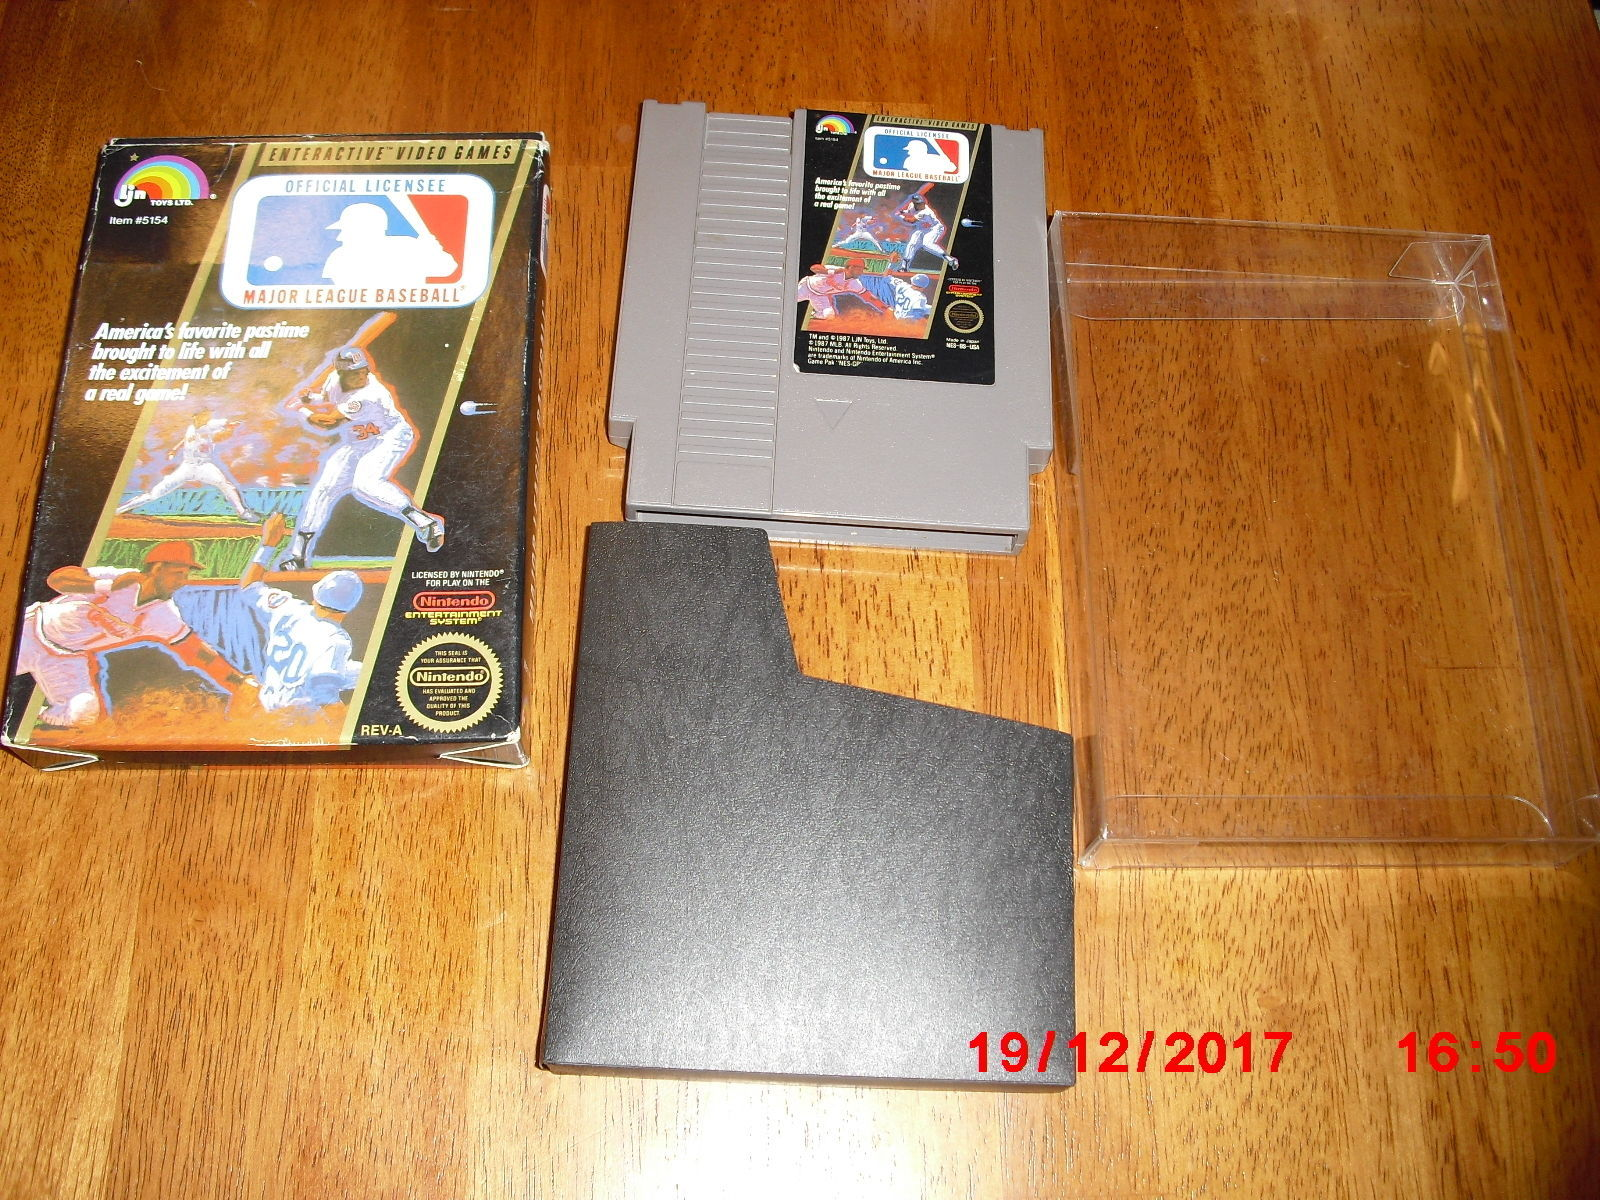 Primary image for Major League Baseball (Nintendo Entertainment System, 1988)